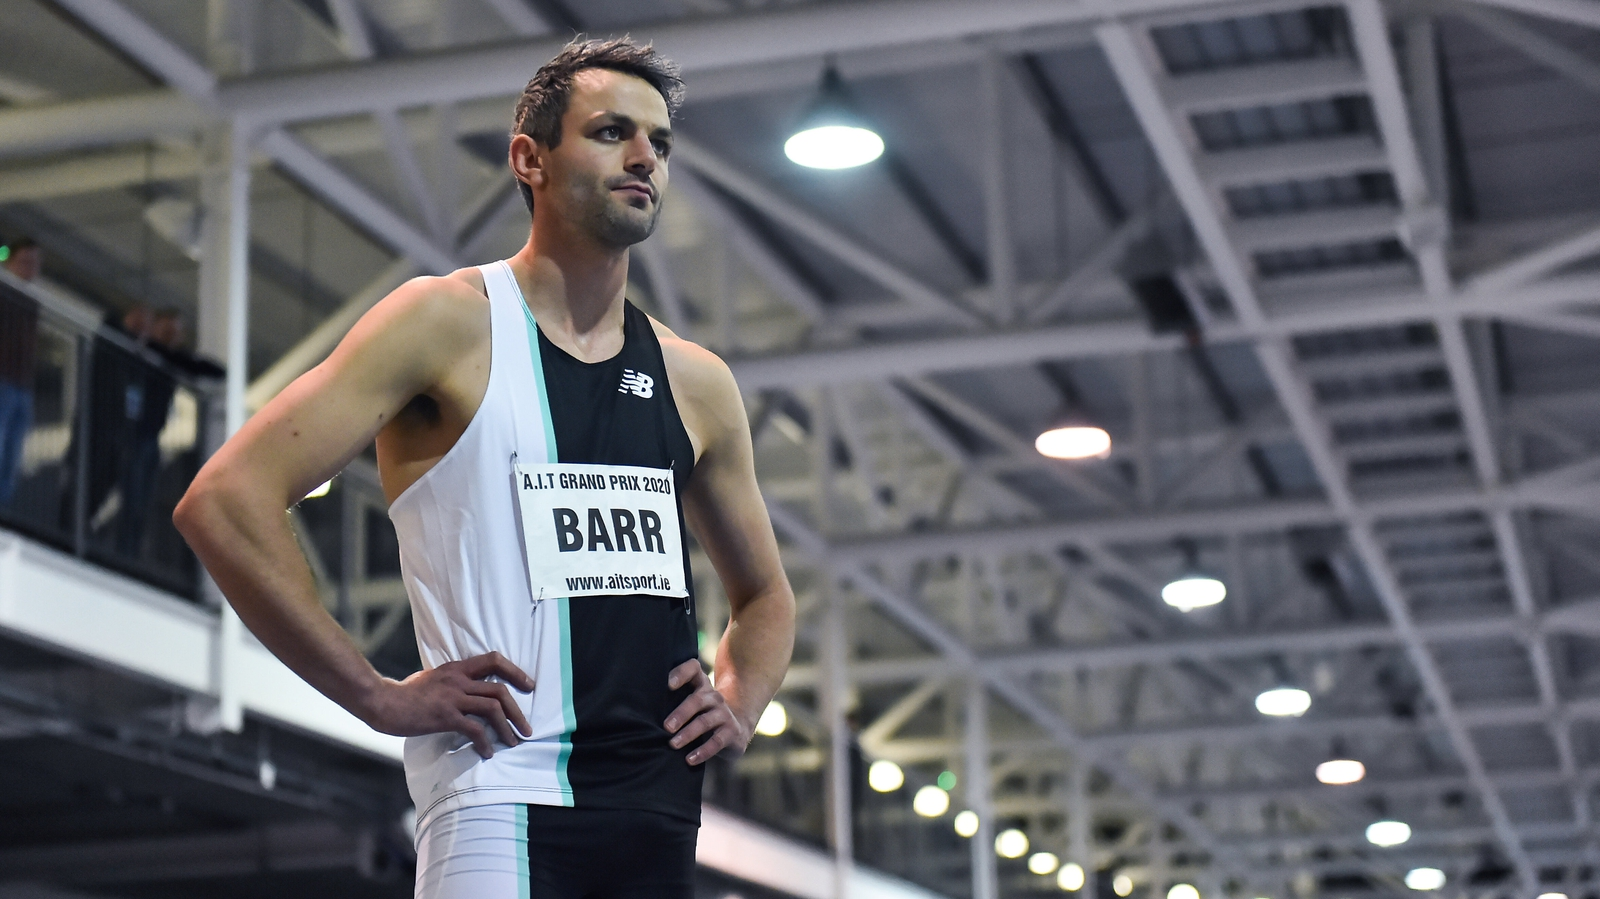 Thomas Barr laps up Athlone 'confidence booster'